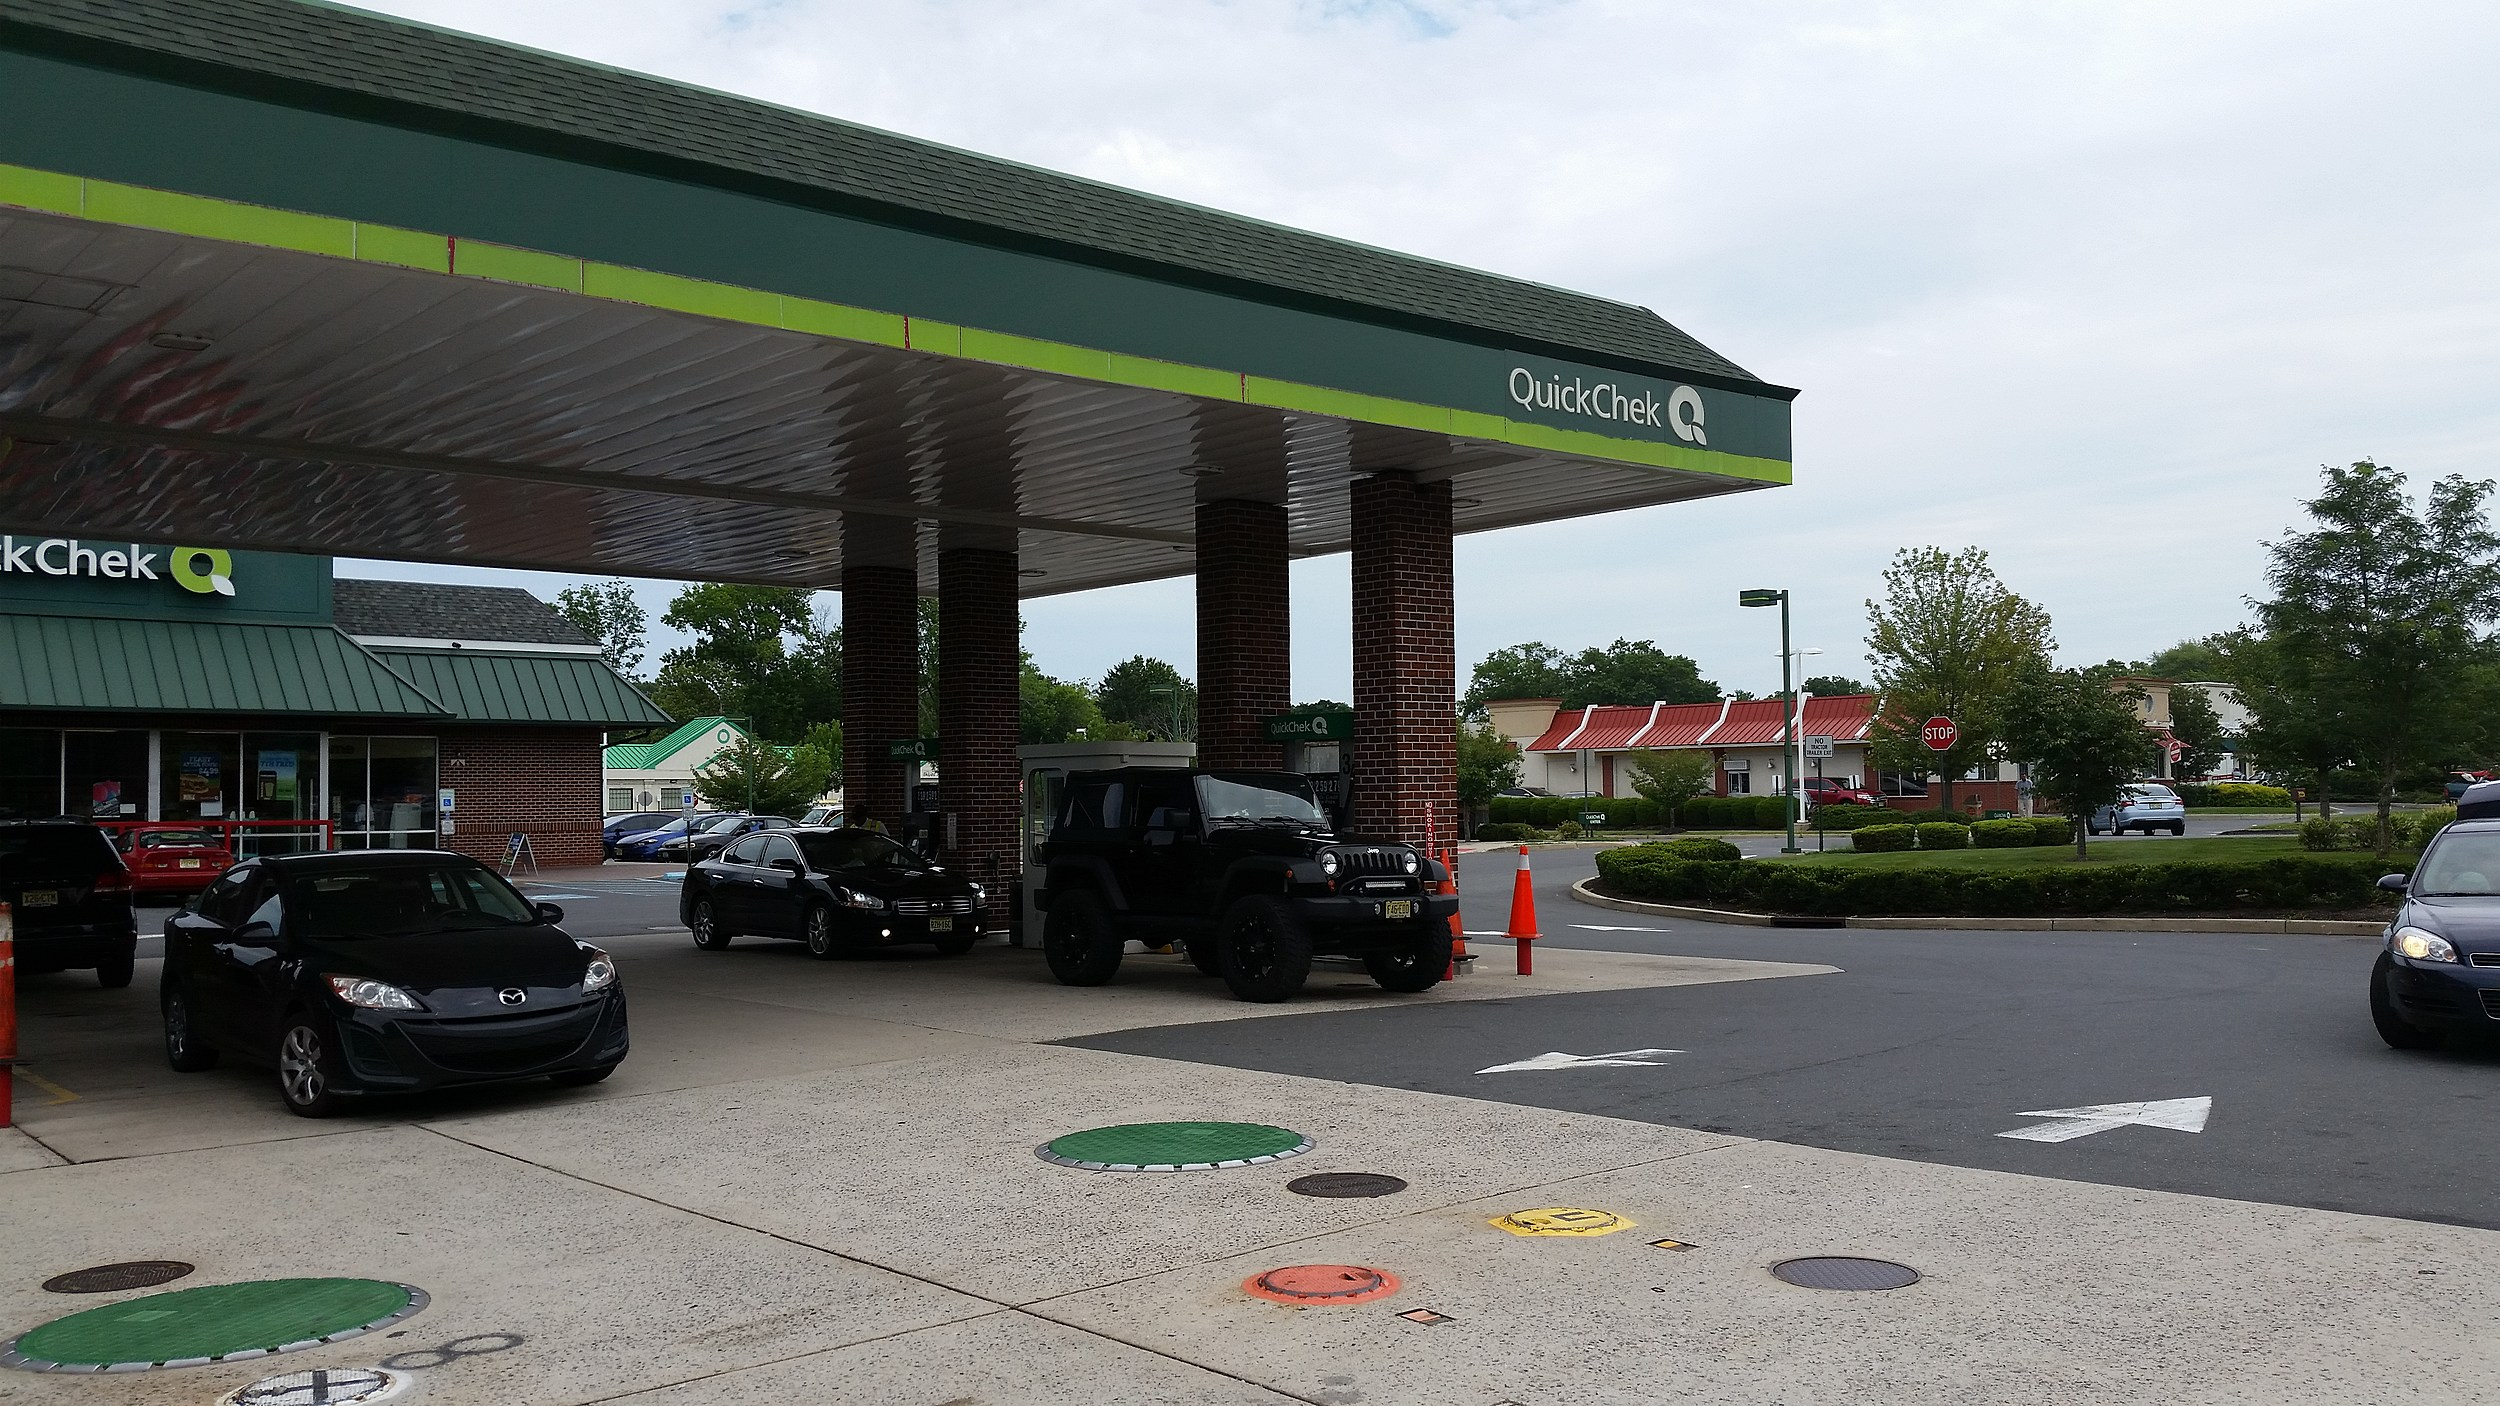 The cheapest and most expensive gas stations in NJ